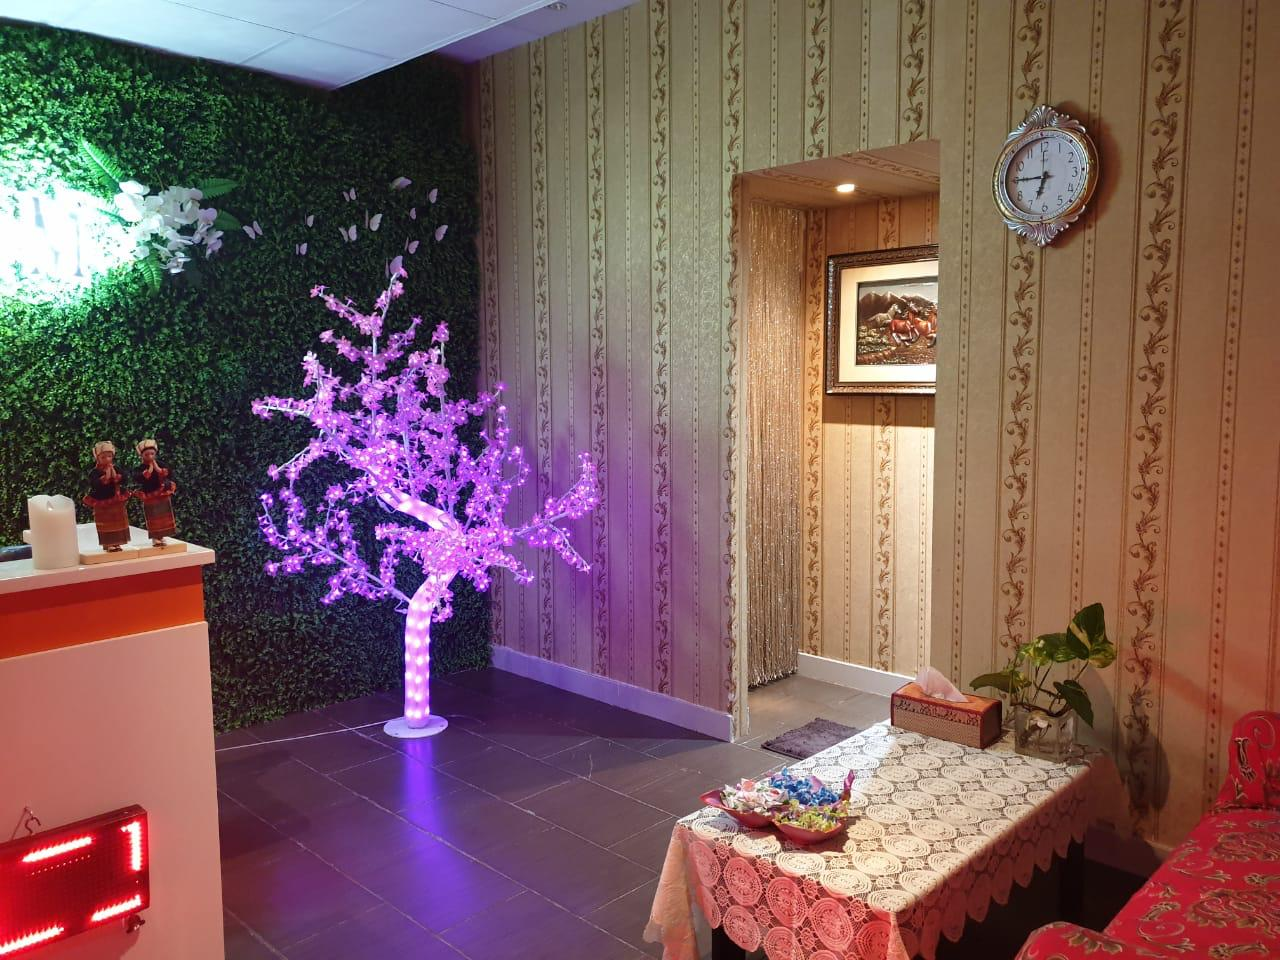 Siam Spa Massage centre